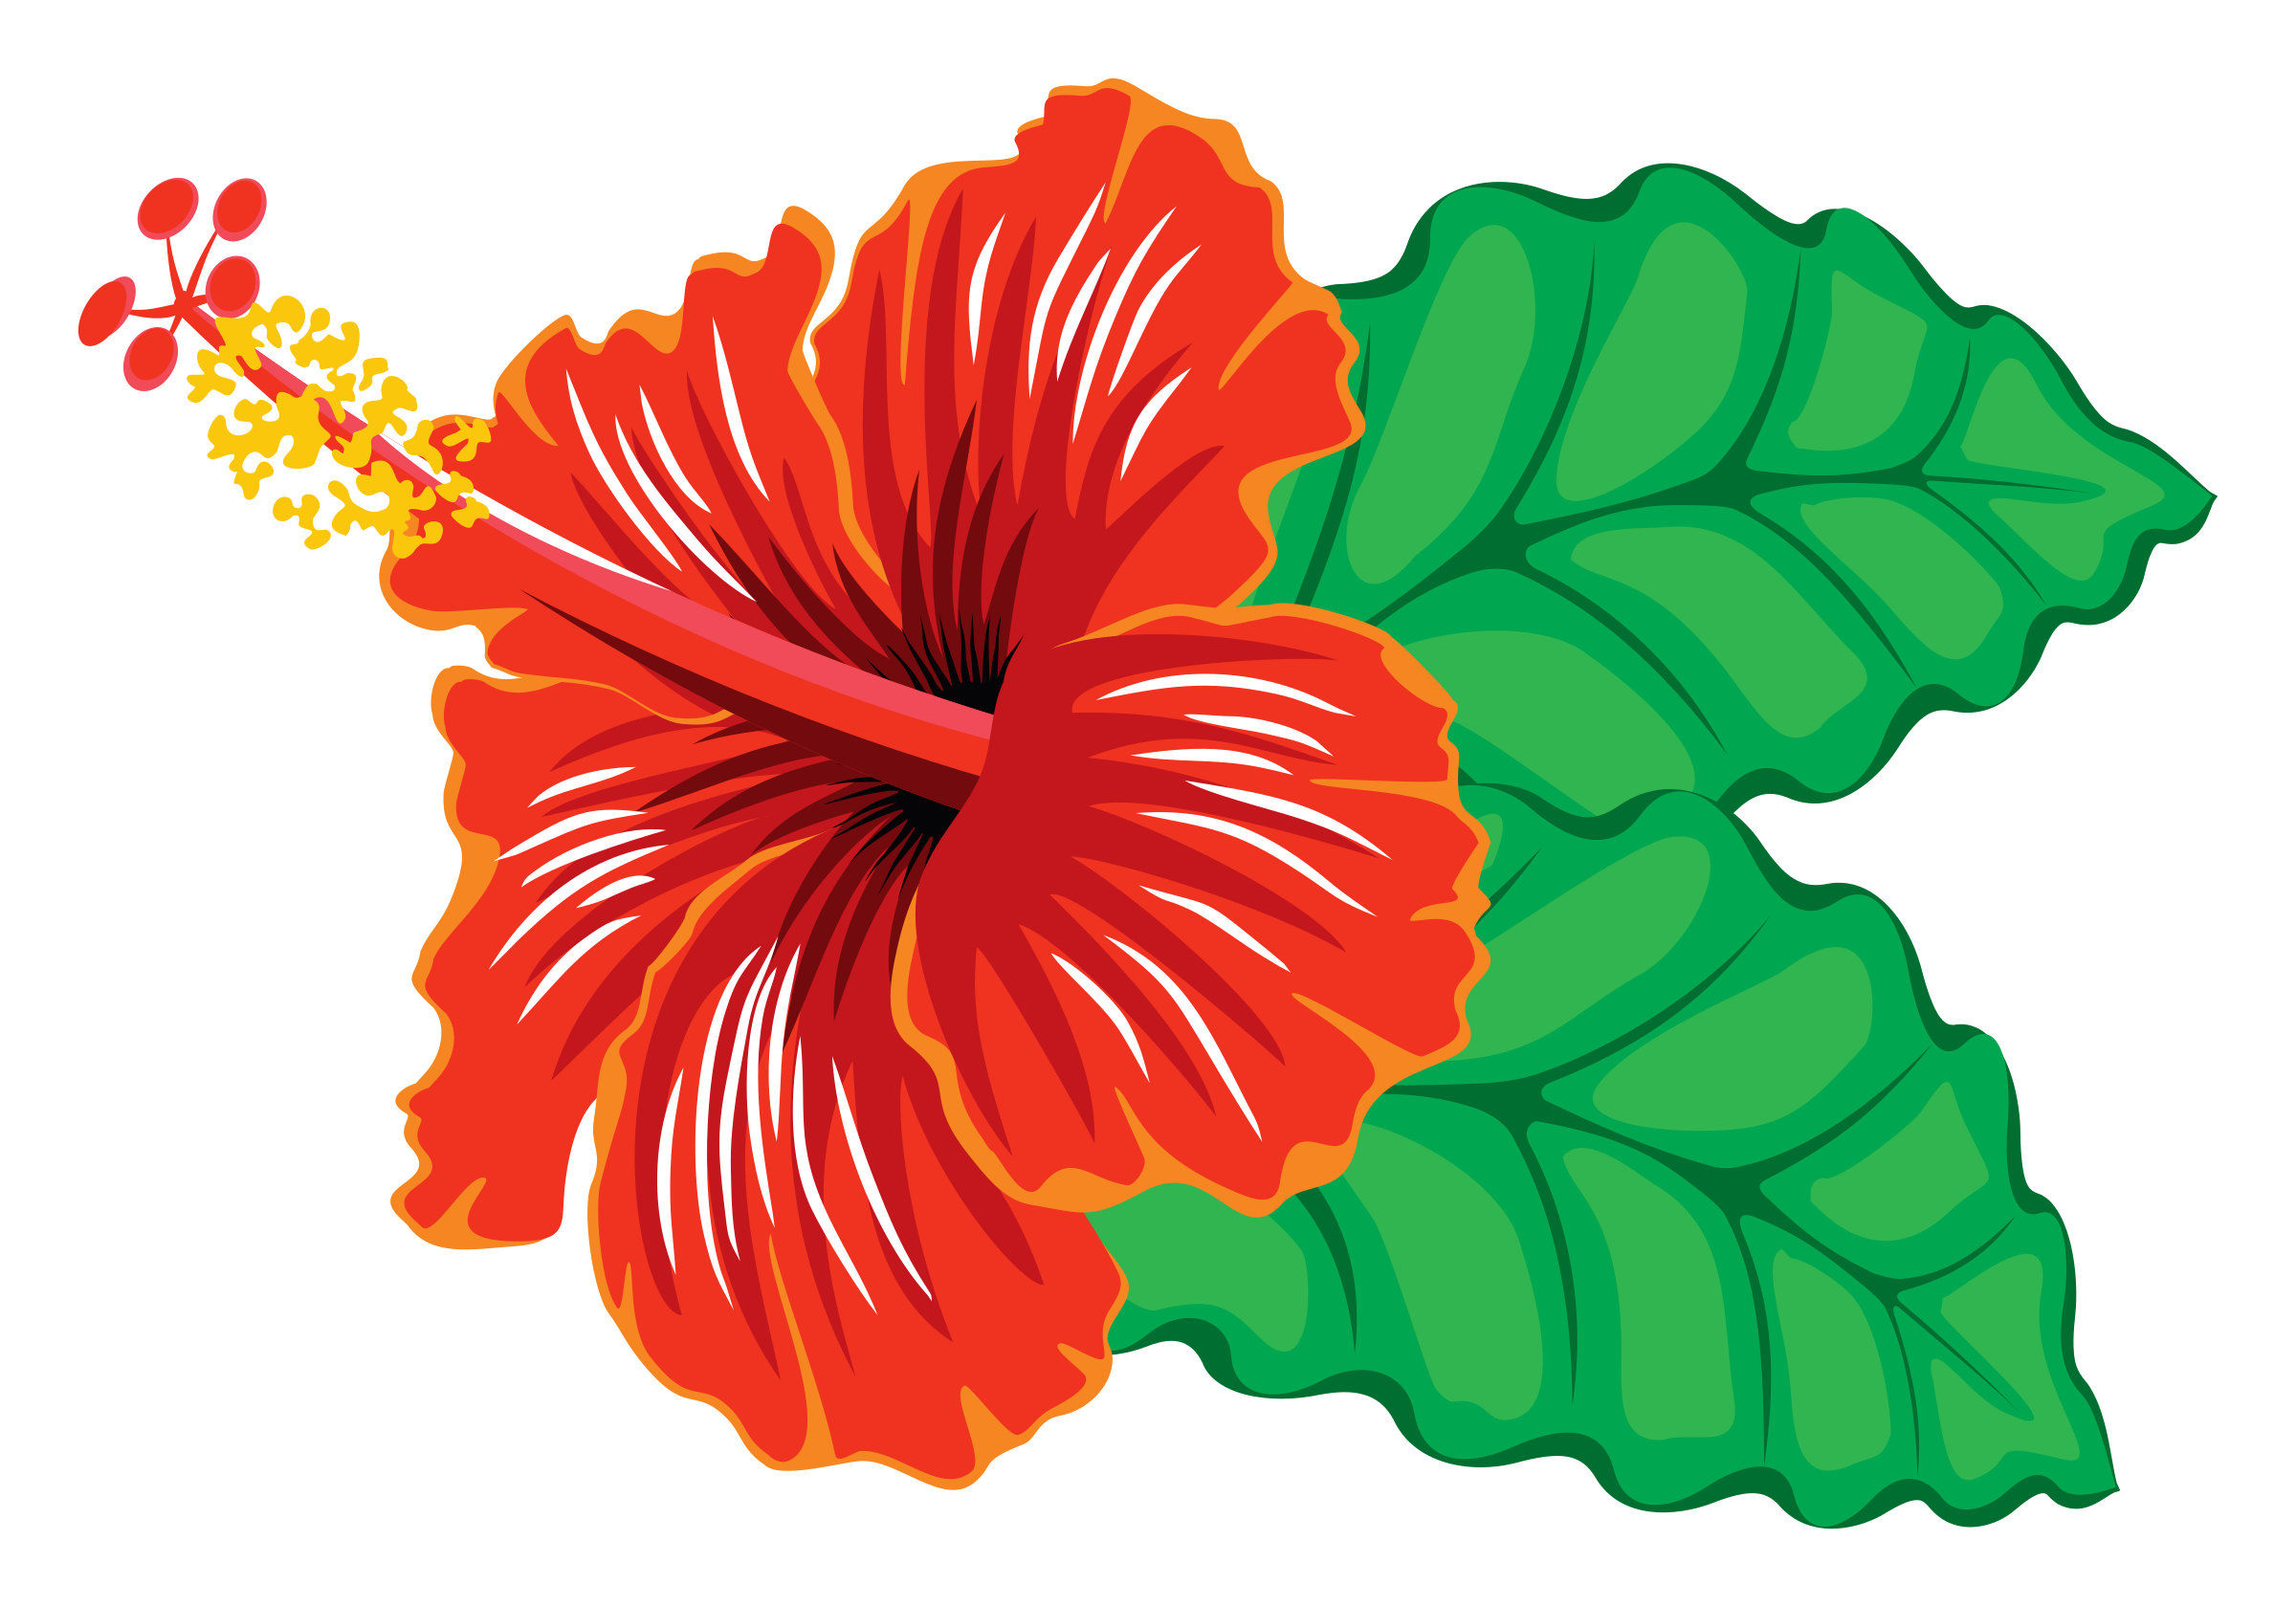 Free hibiscus flower clipart jpg transparent download 28+ Collection of Red Hibiscus Clipart | High quality, free cliparts ... jpg transparent download